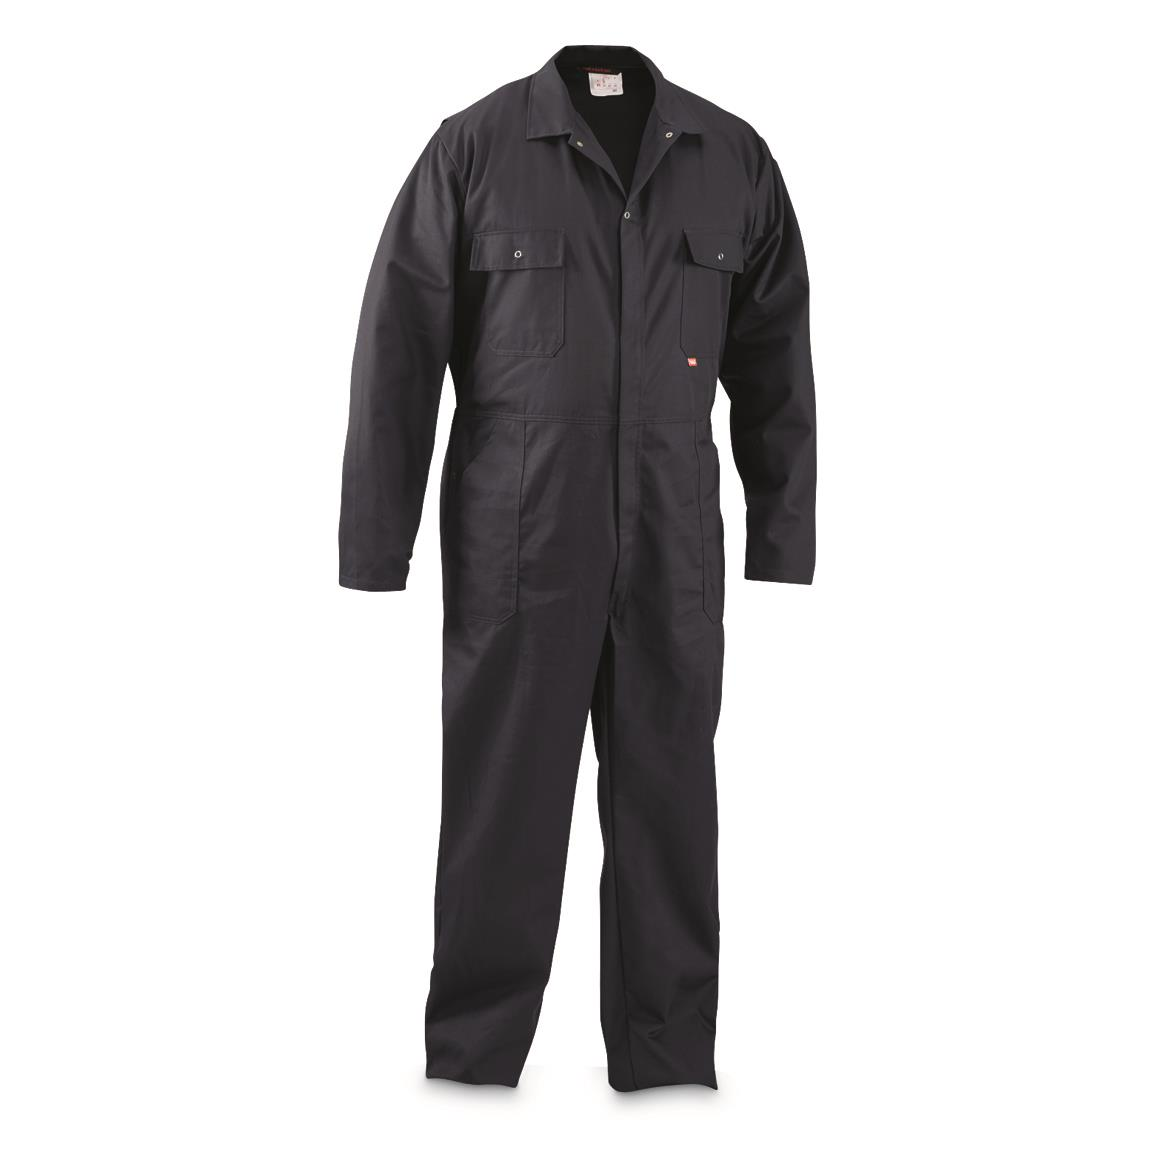 Dutch Military Surplus Coveralls, Like New